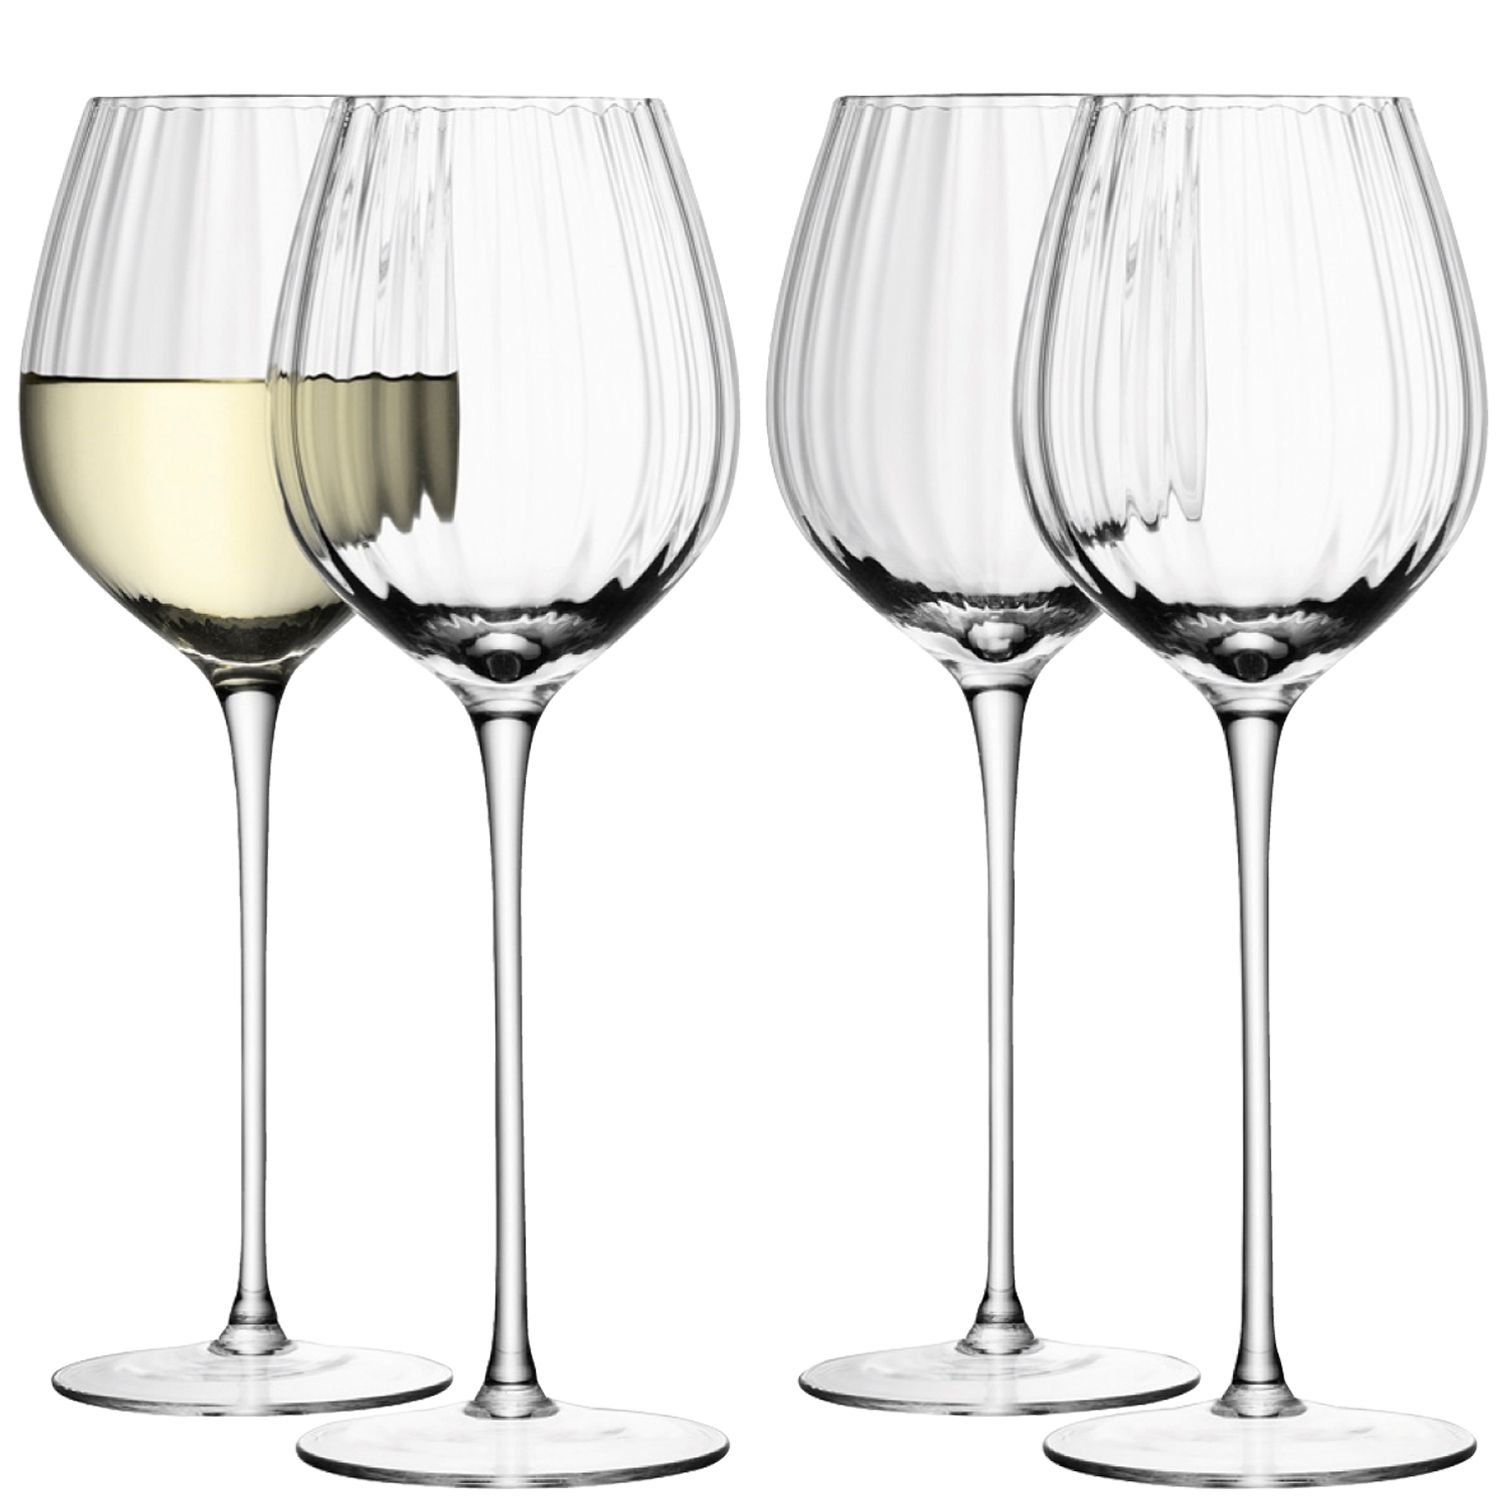 Aurelia white wine glasses clear optic set of 4